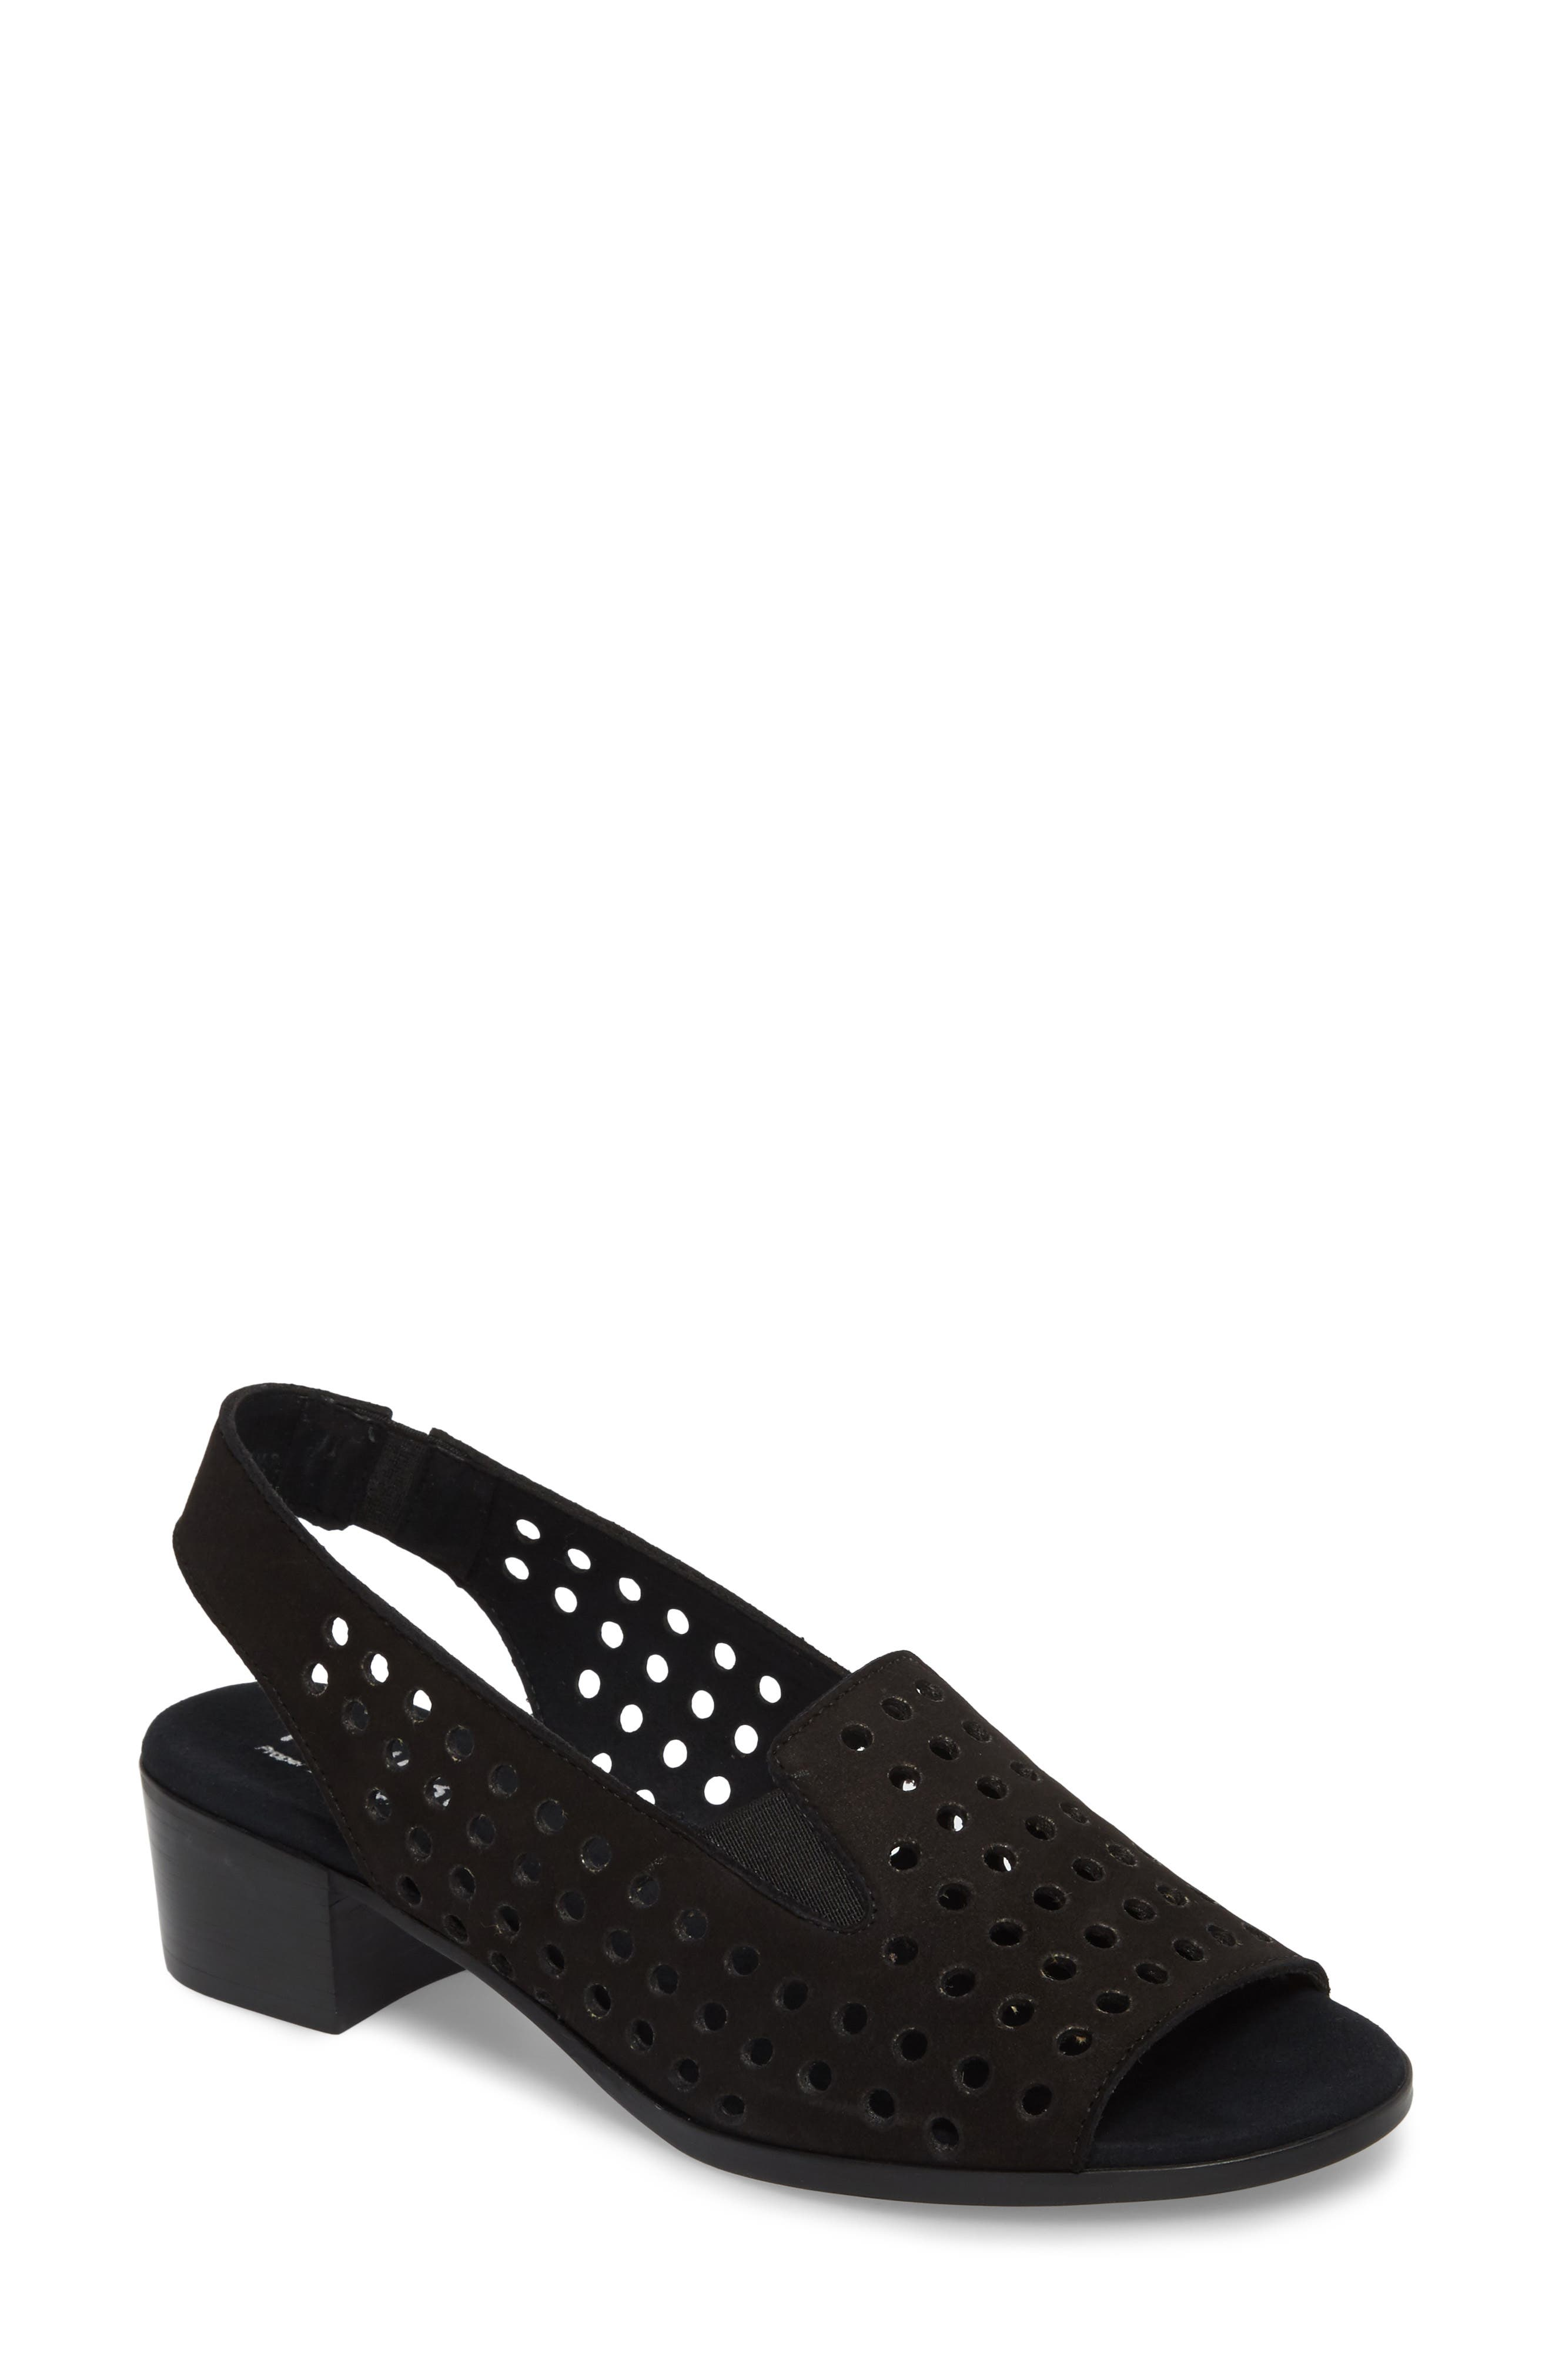 Mickee Slingback Sandal,                         Main,                         color, BLACK NUBUCK LEATHER